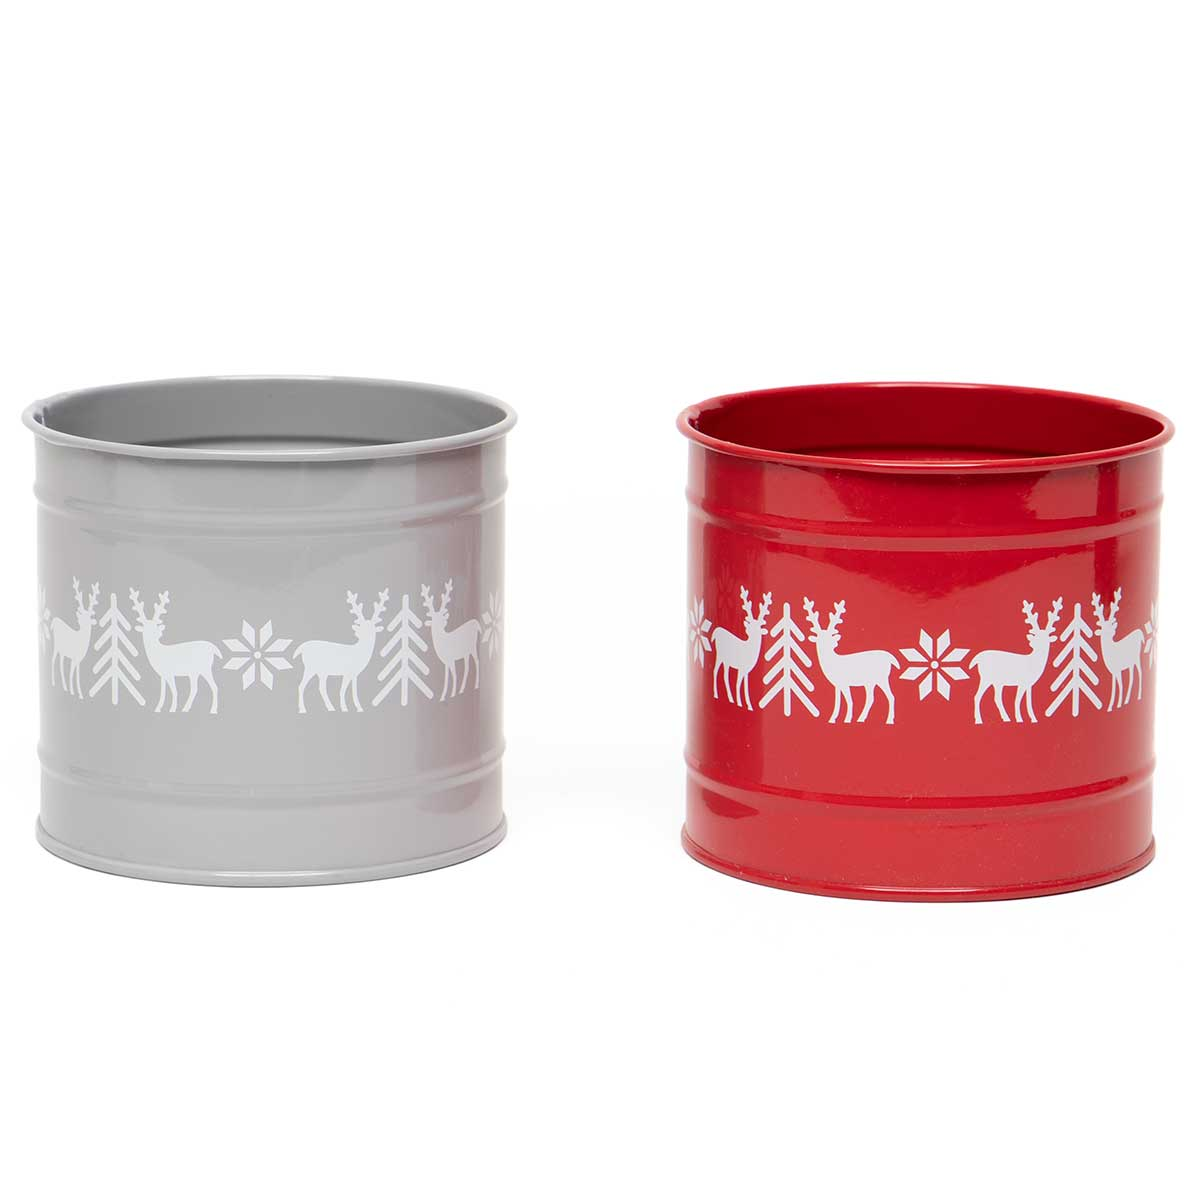 SWEDISH DEER METAL PAIL WITH TREES AND POINSETTIAS